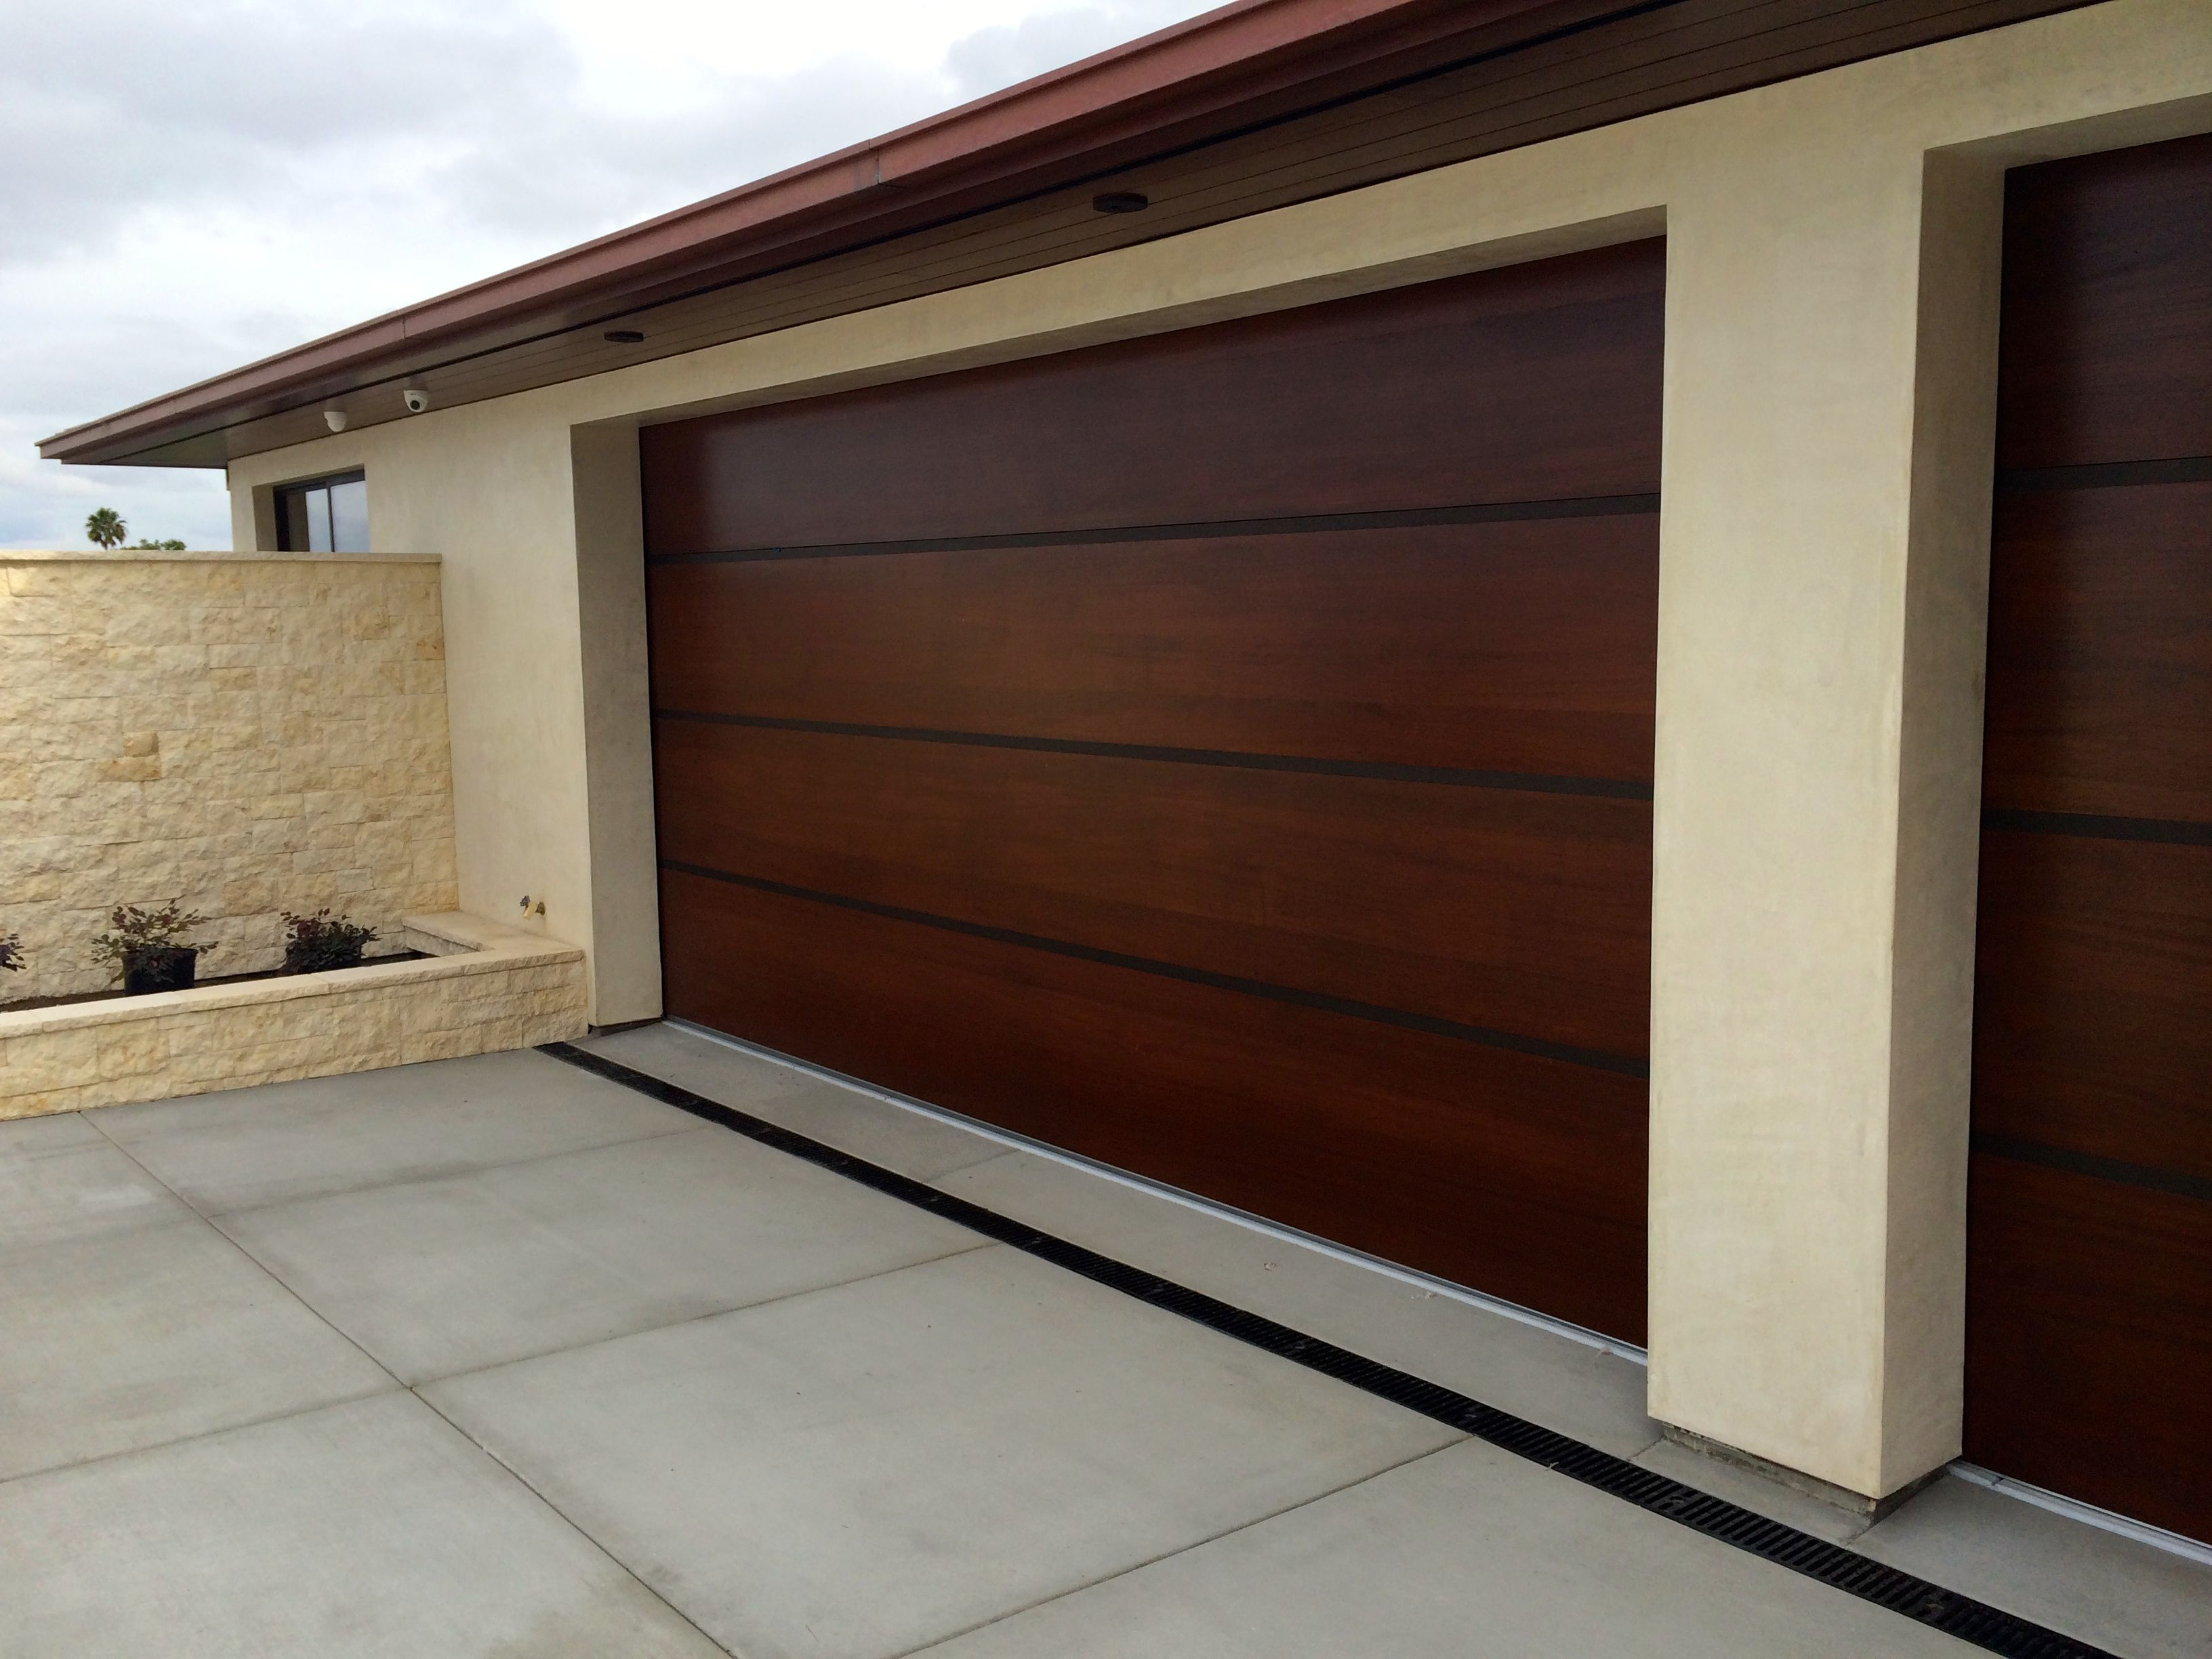 door pedestrian beautiful image l with horizontal garage handballtunisie org french collections doors sliding